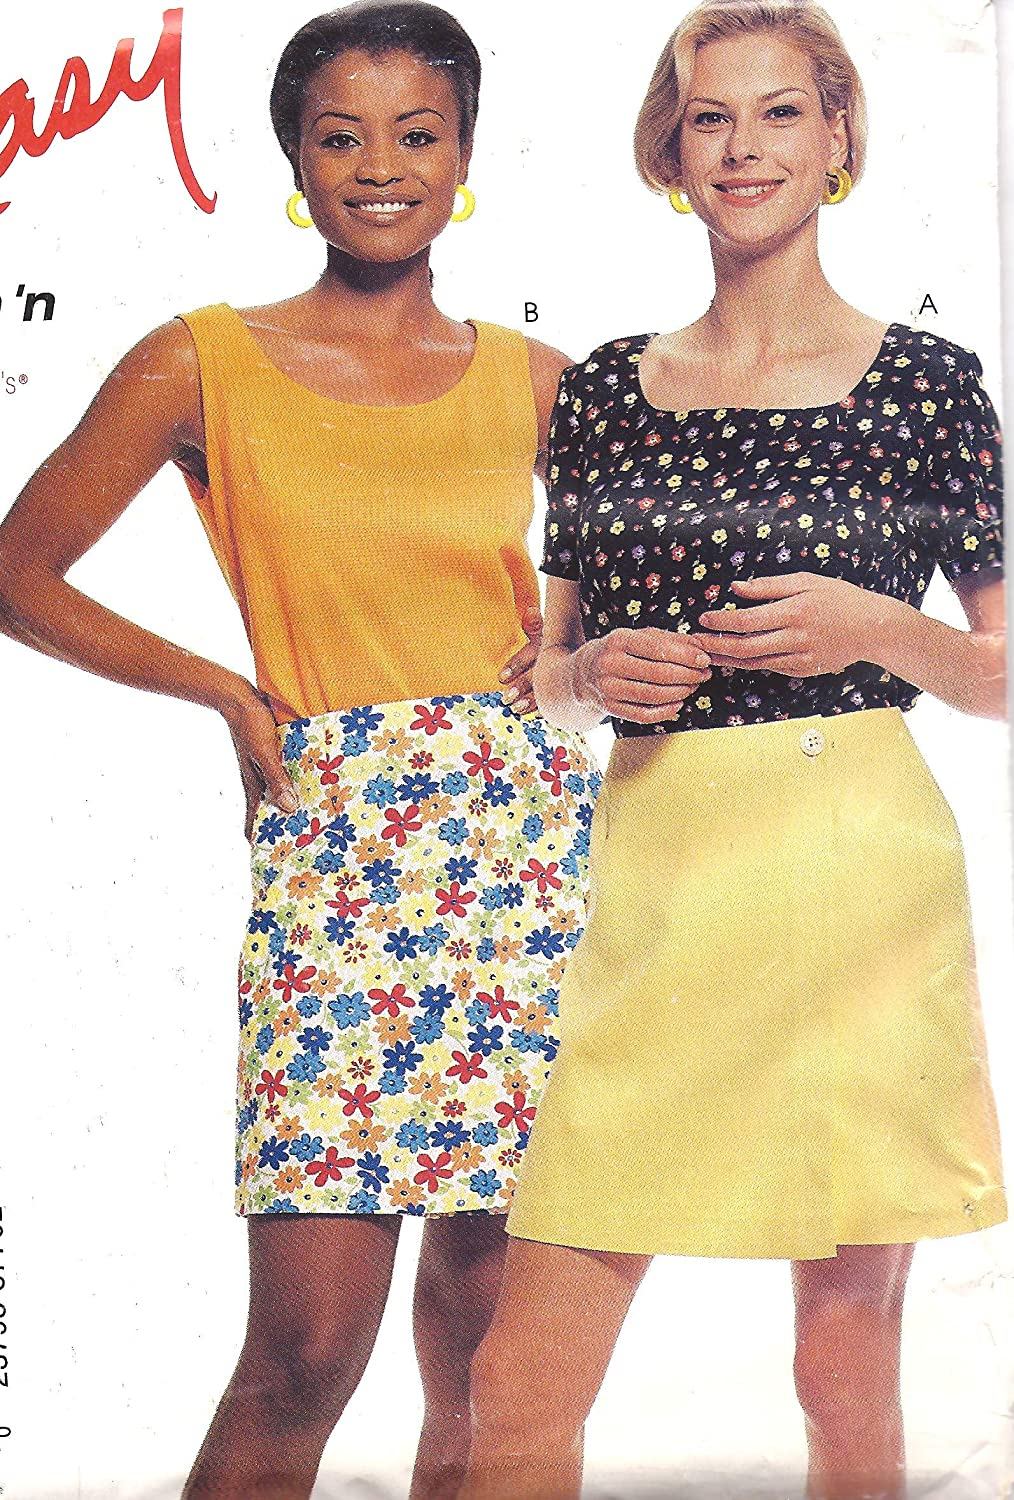 8770 McCalls Sewing Pattern Uncut Misses Tops Skort Size 8 10 12 14